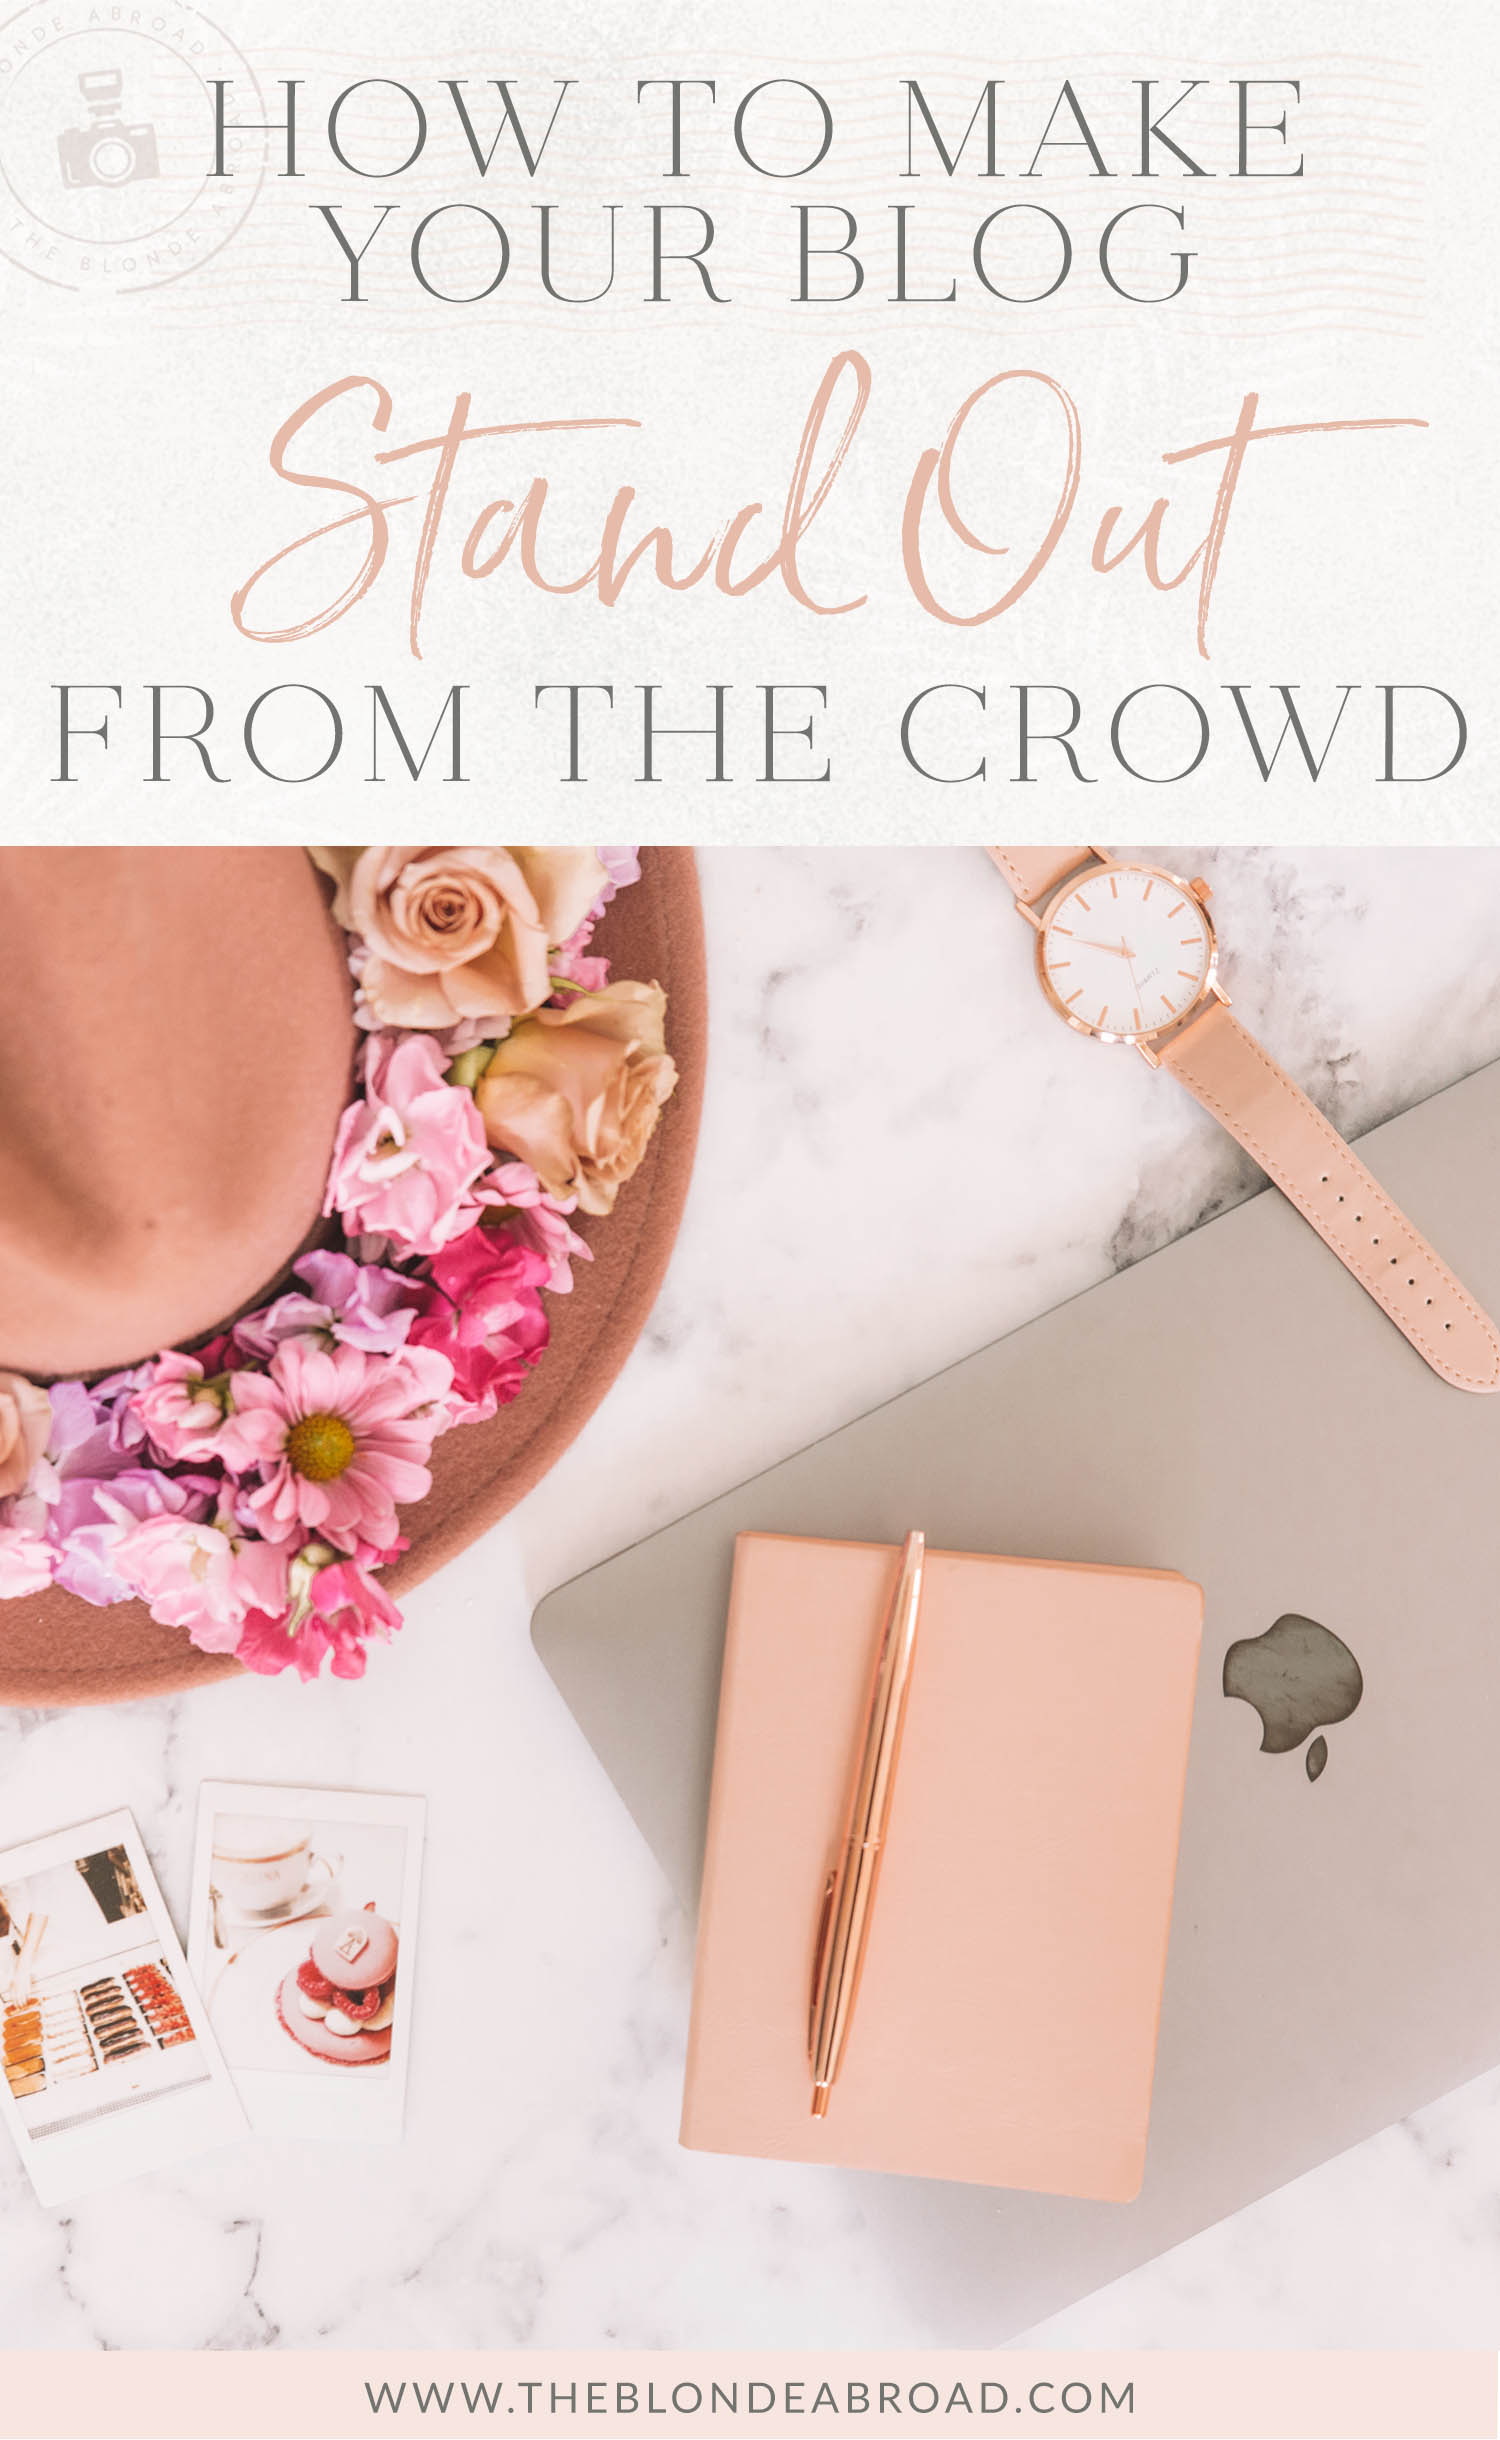 1How to Make Your Blog Stand Out from the crowd